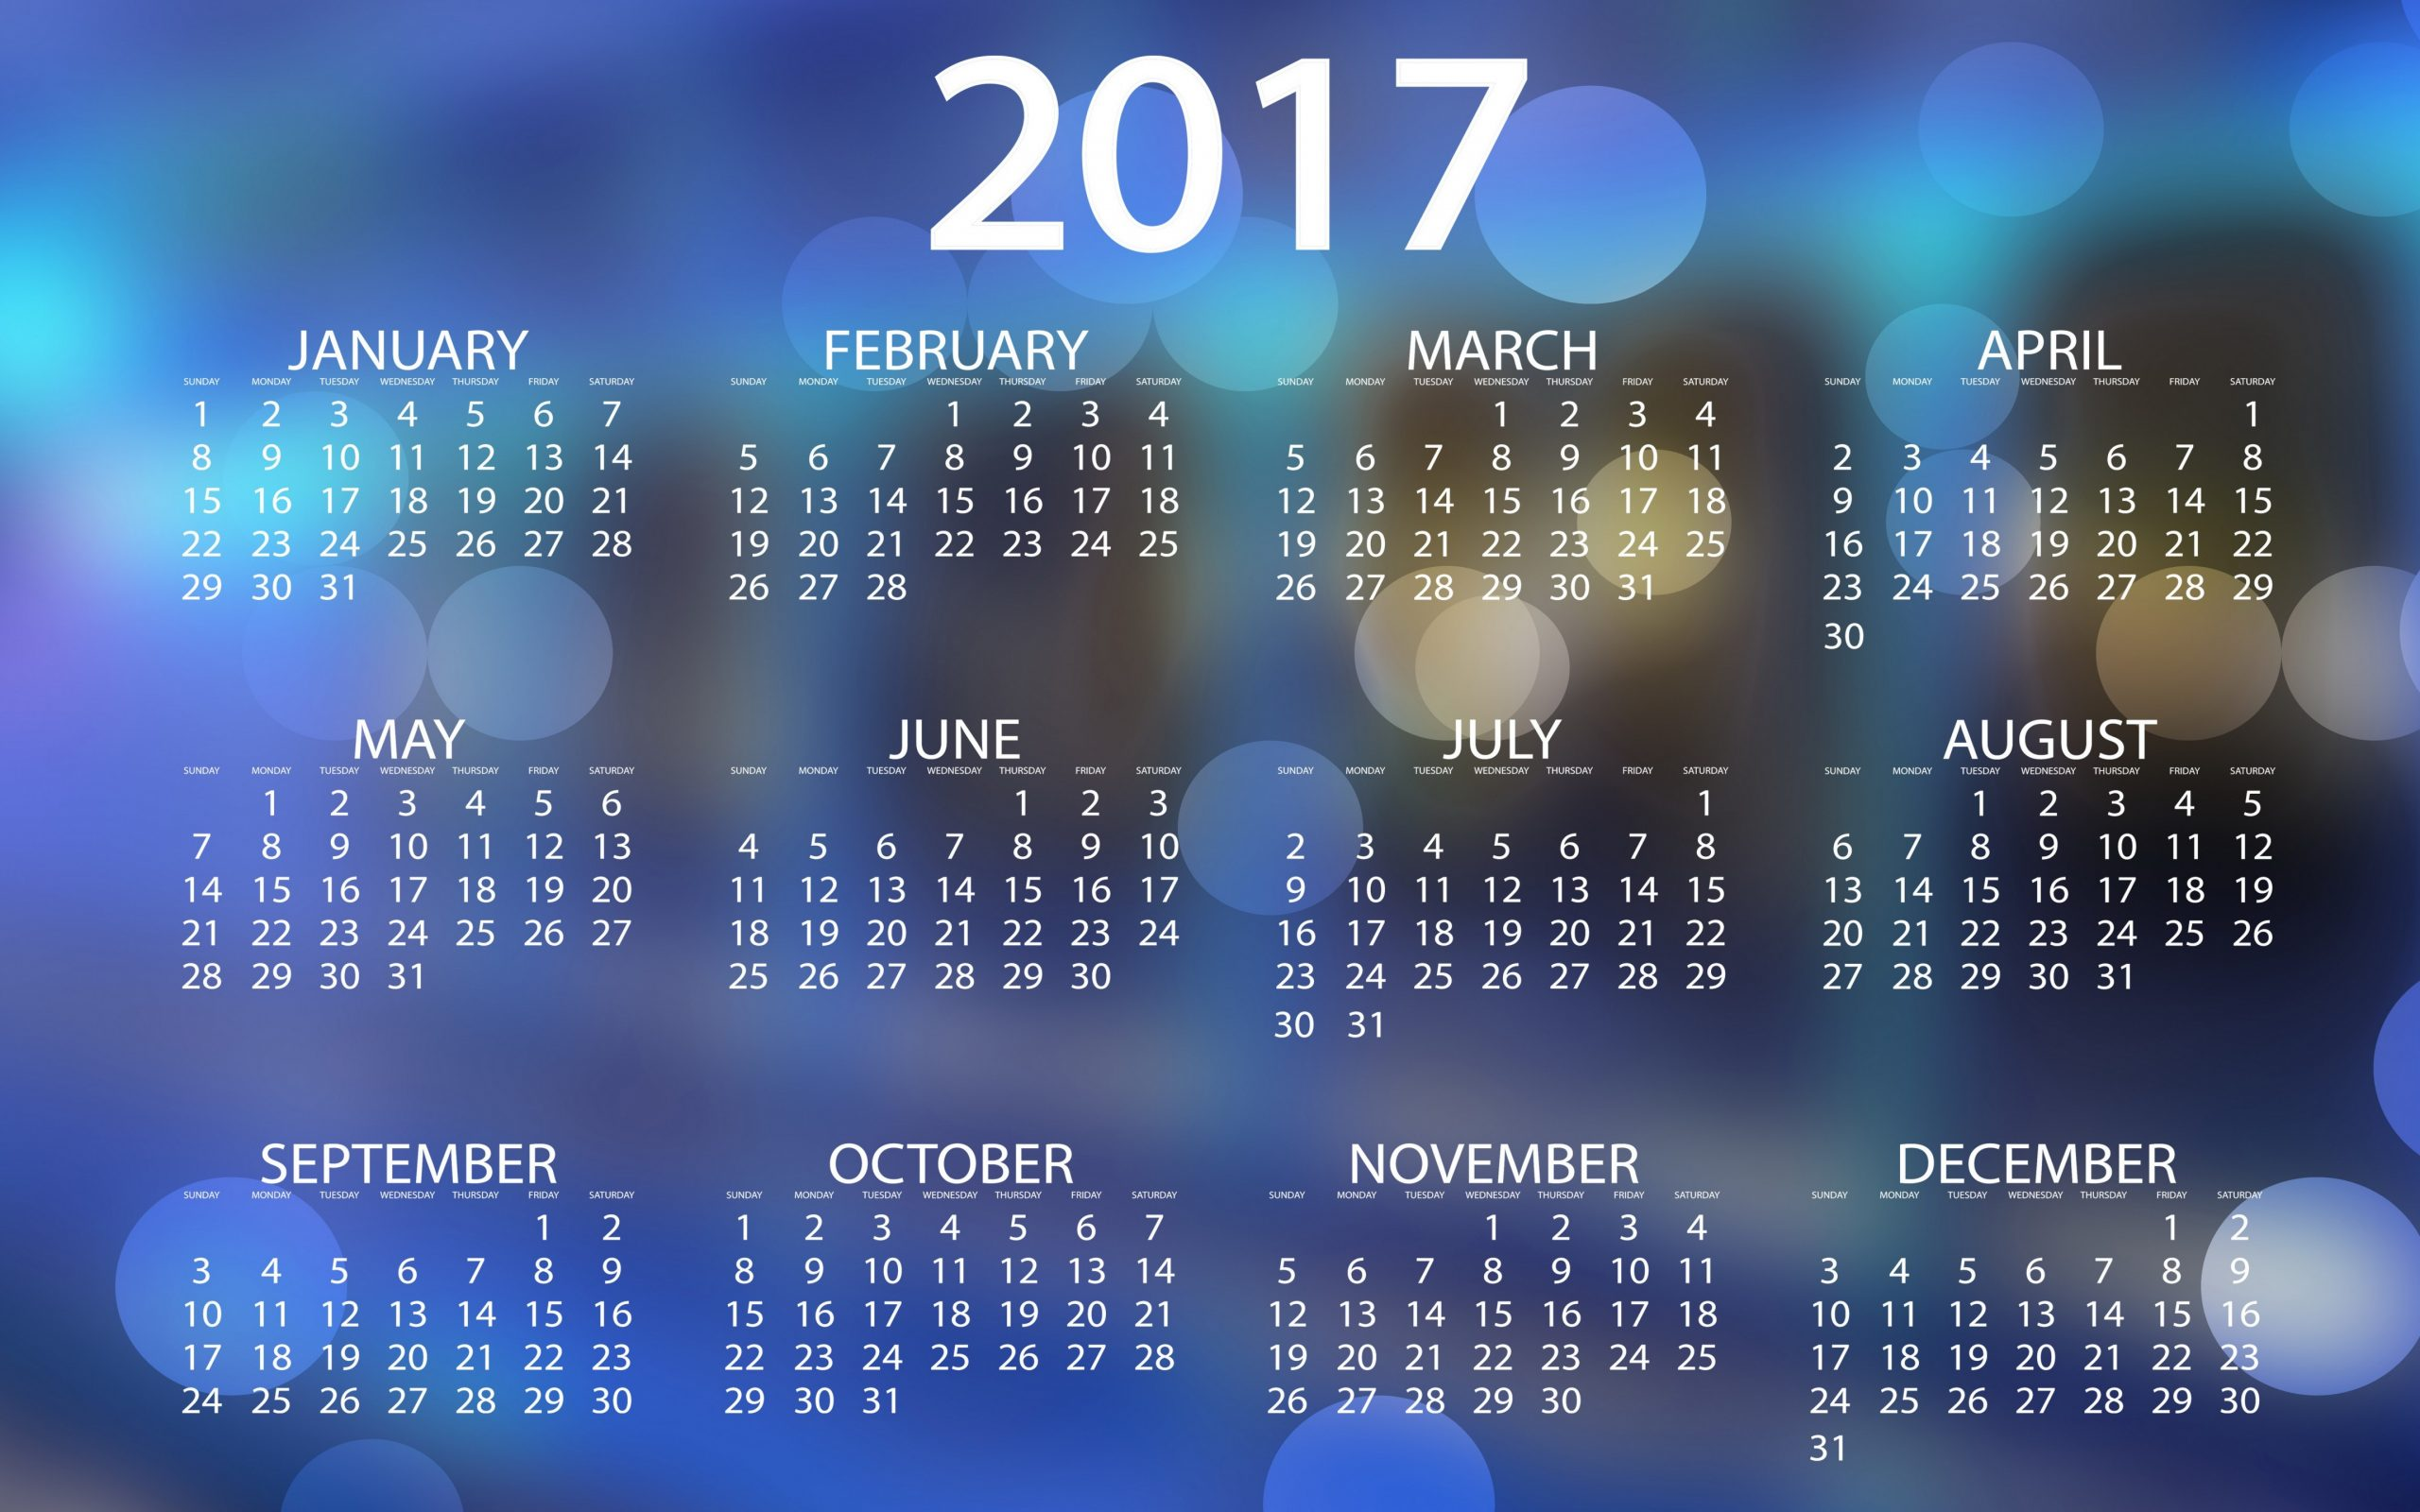 Calendar Wallpaper 2017 : Calendar wallpaper k background hd